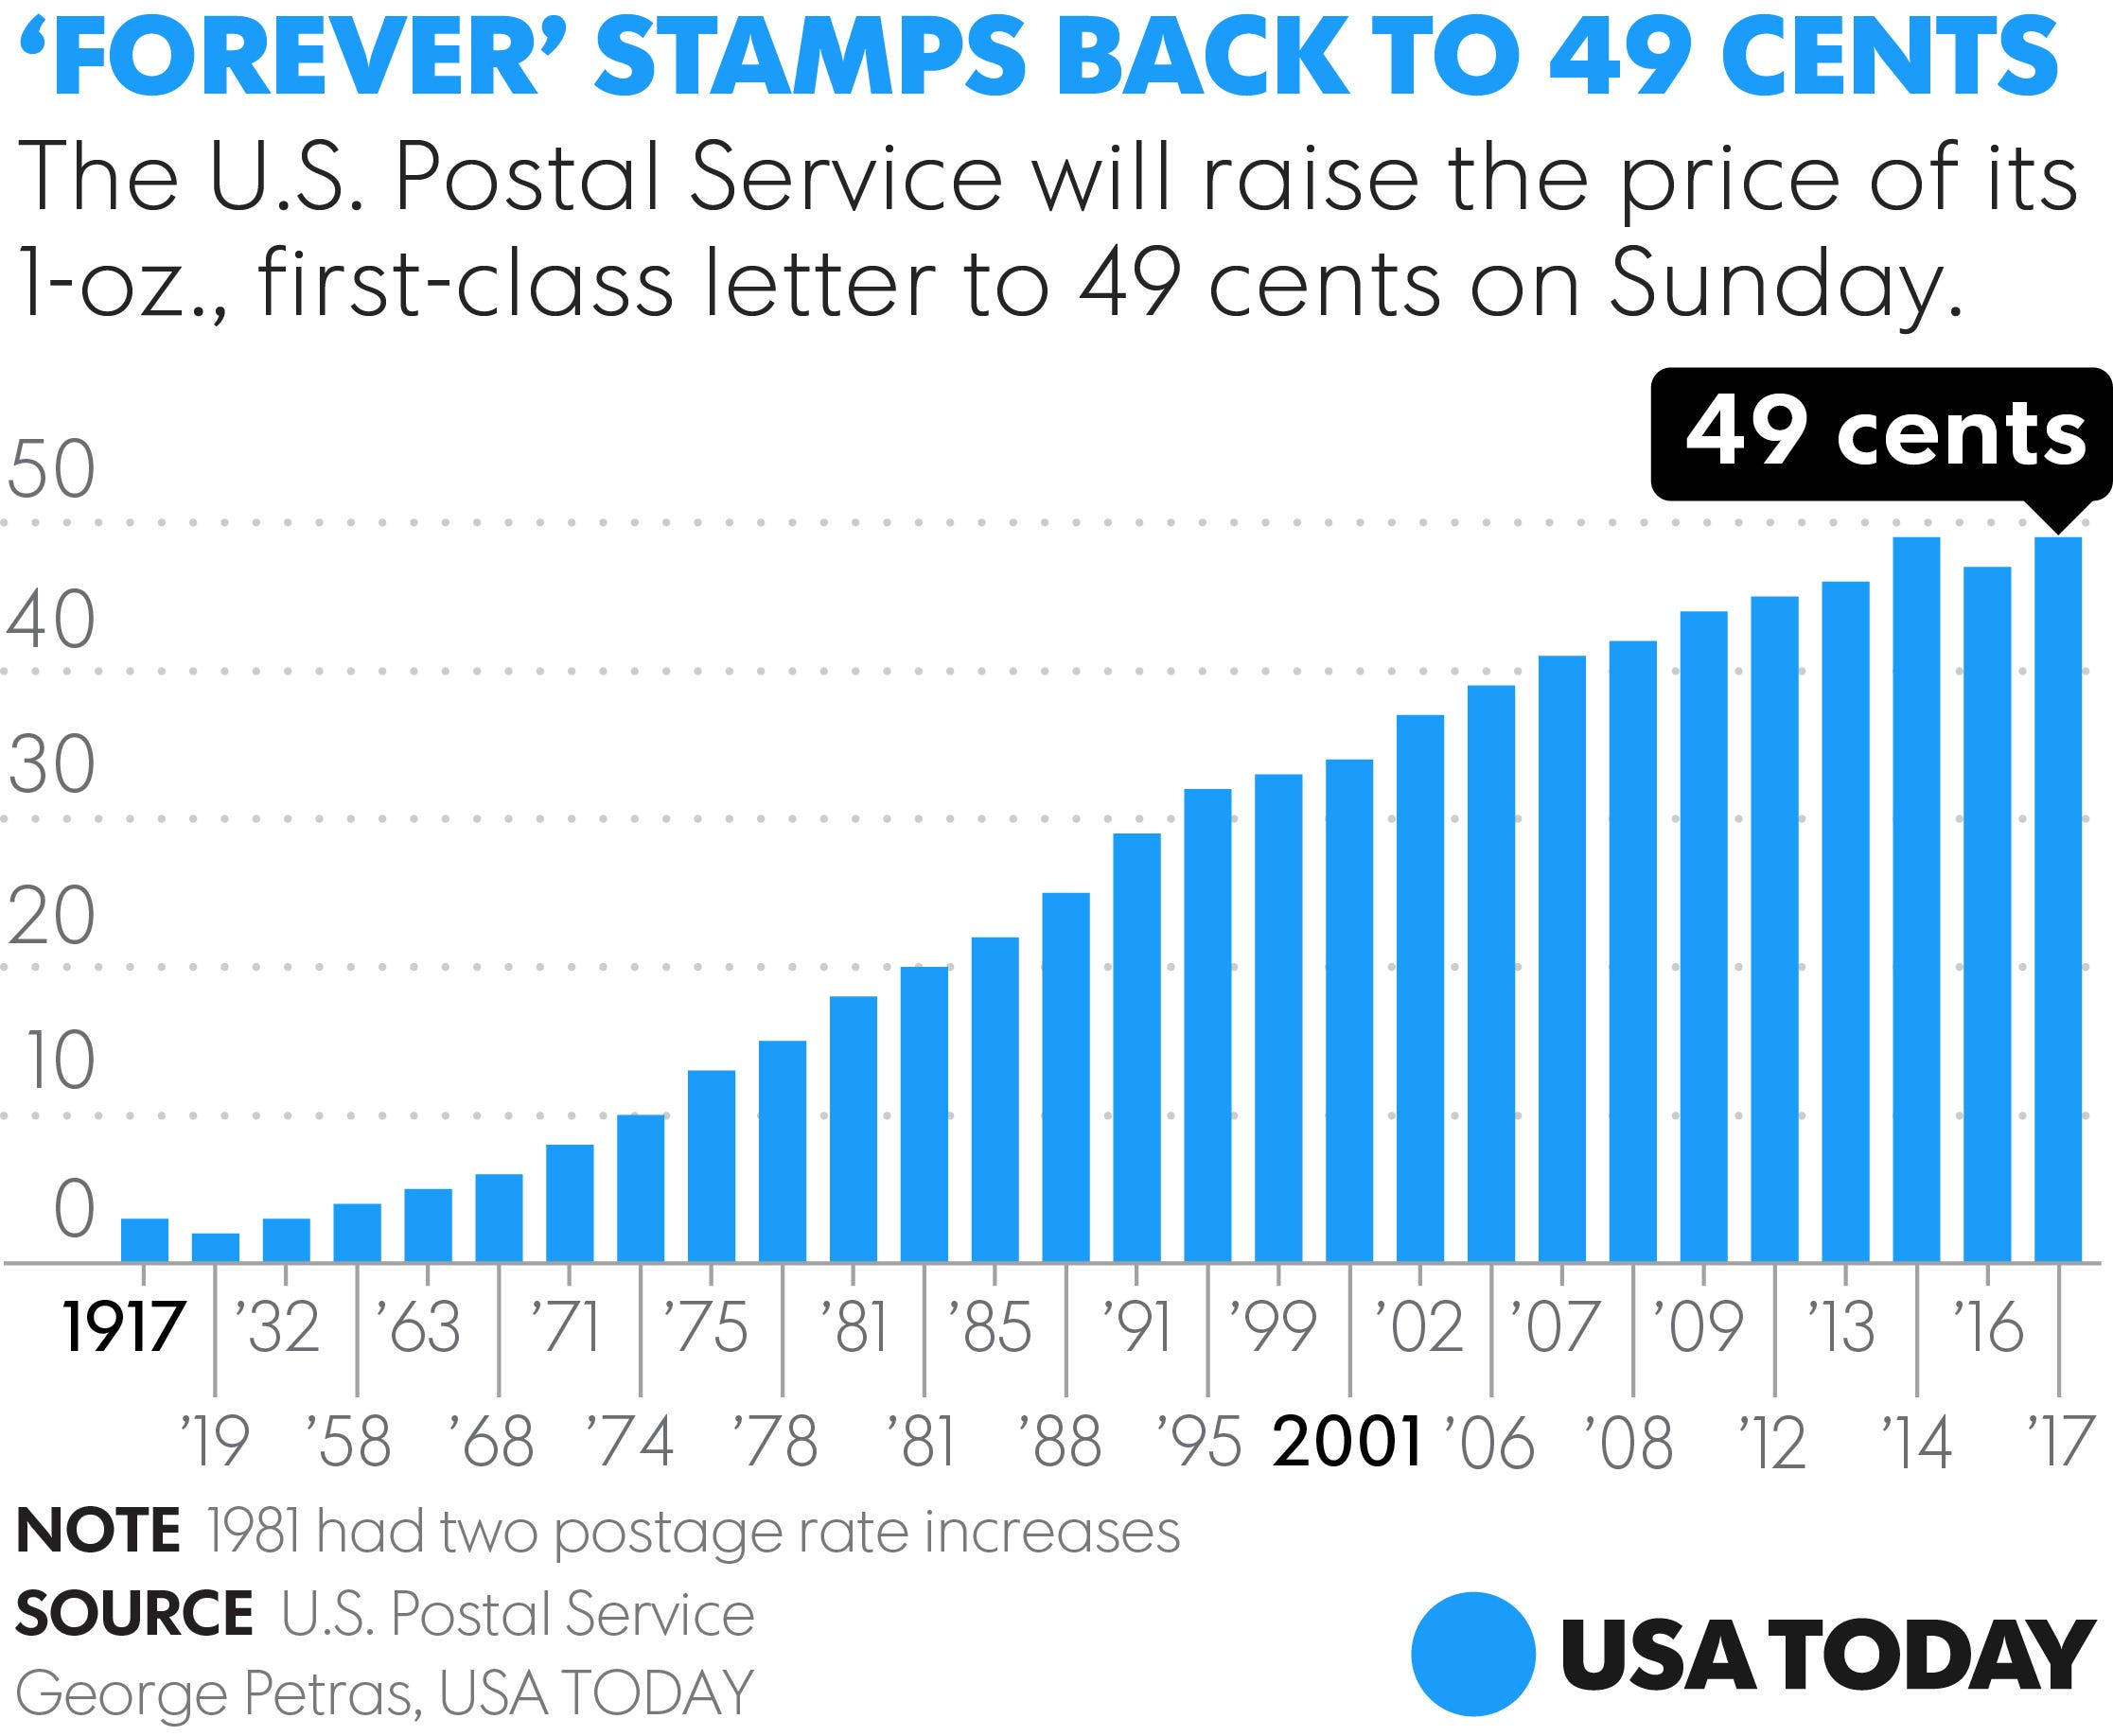 Forever Stamps Will Cost More Starting Sunday